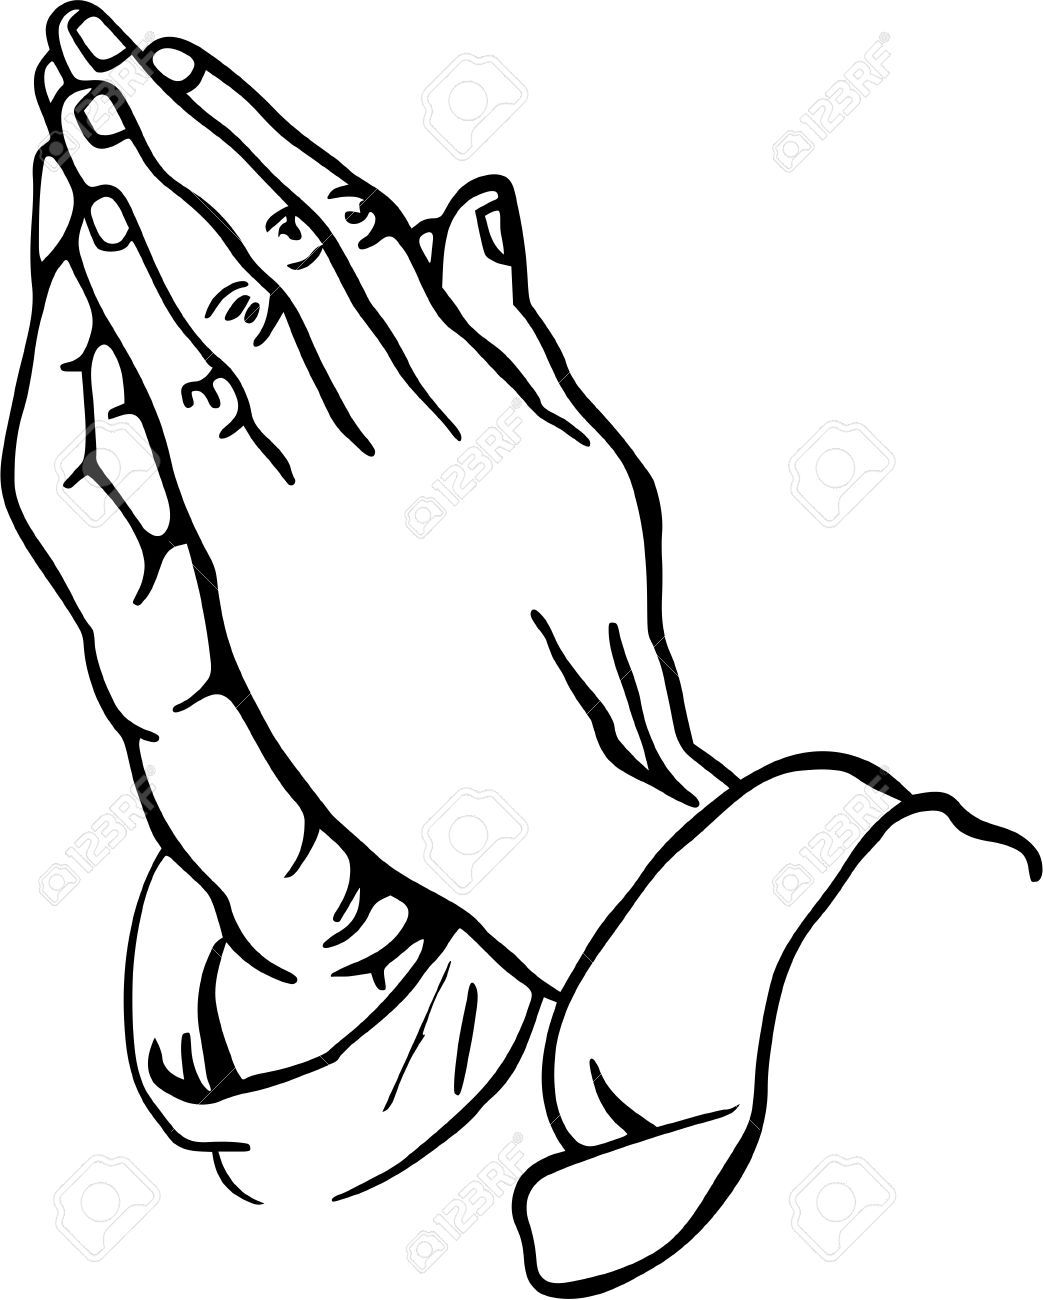 1043x1300 Stock Photo Craft Ideas Praying Hands Tattoo, Praying Hands